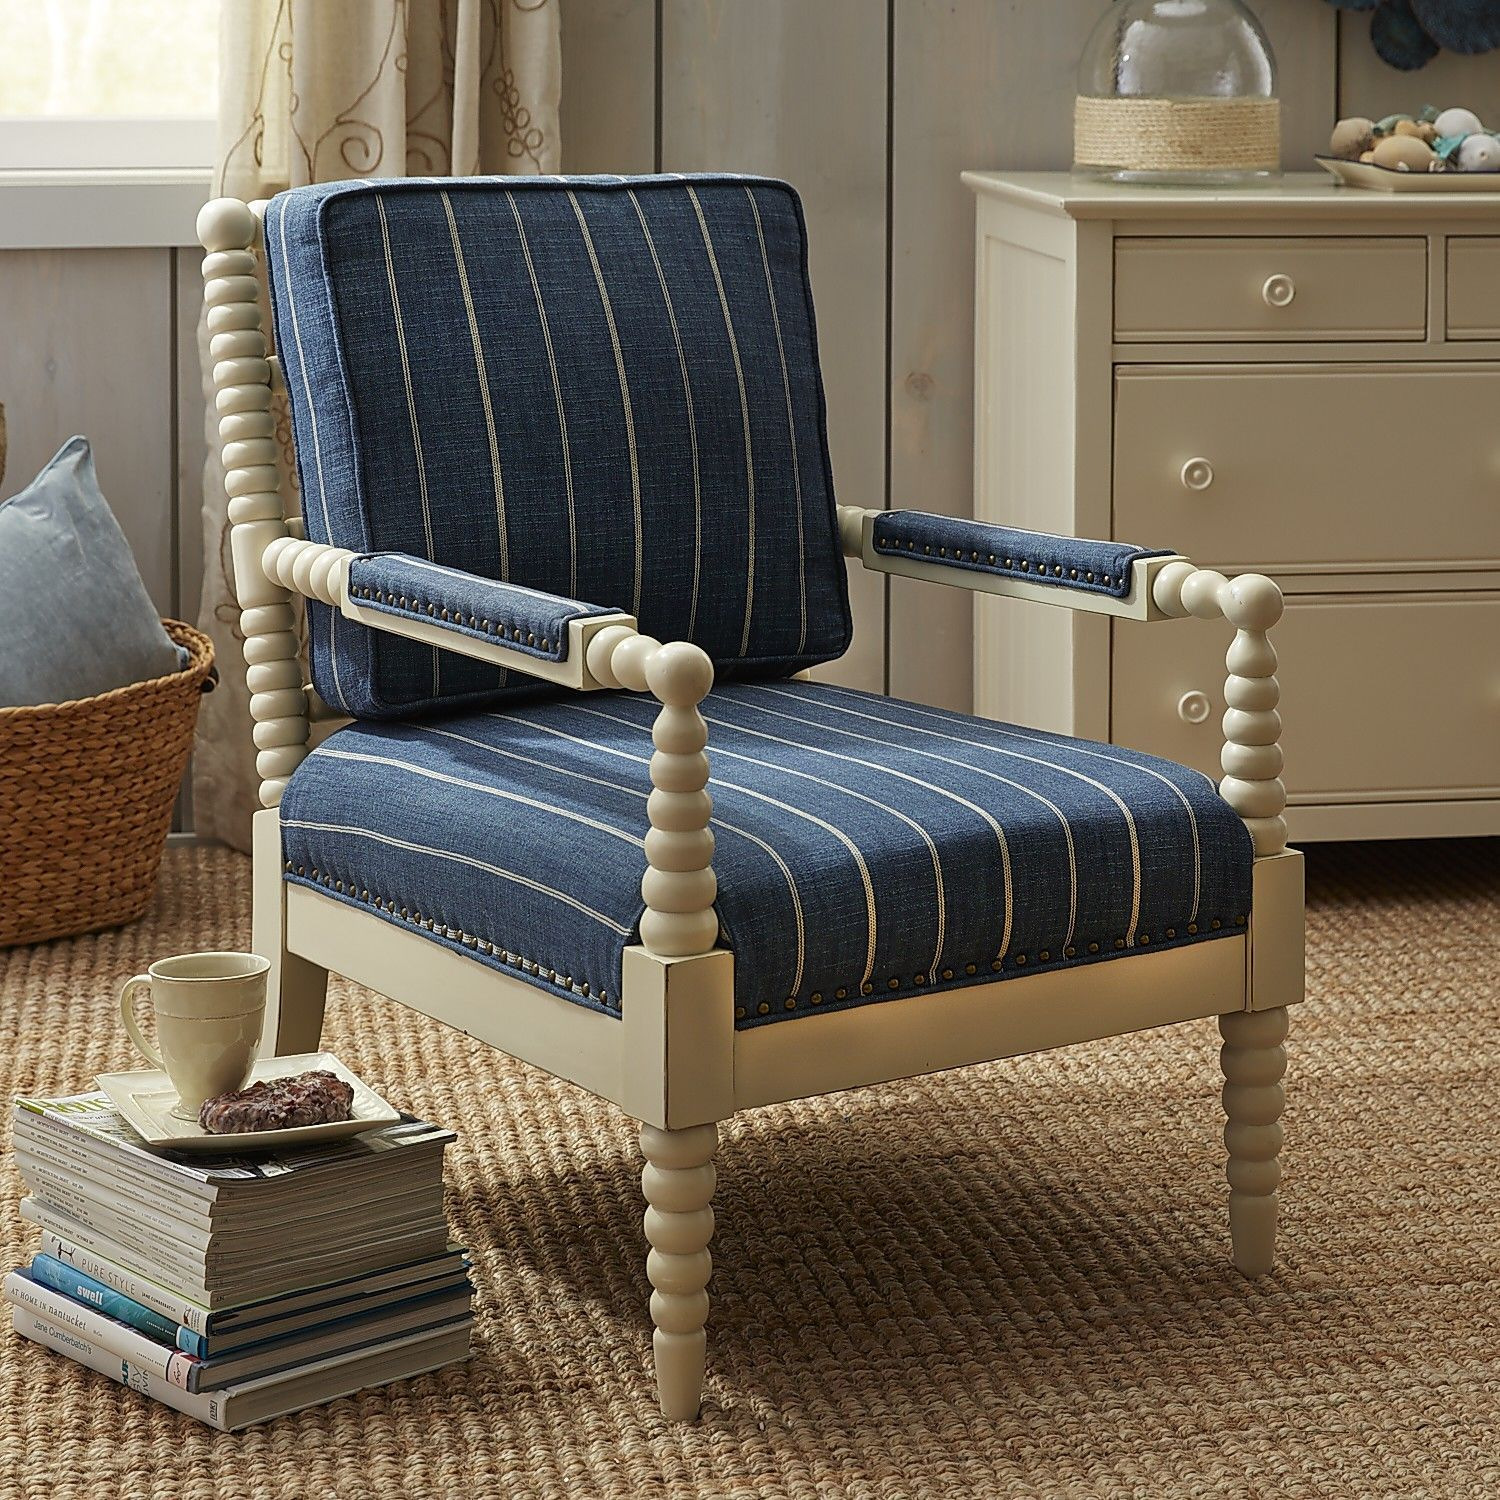 Spindle Arm Chair 500 at Pier One. Bobbin Chair